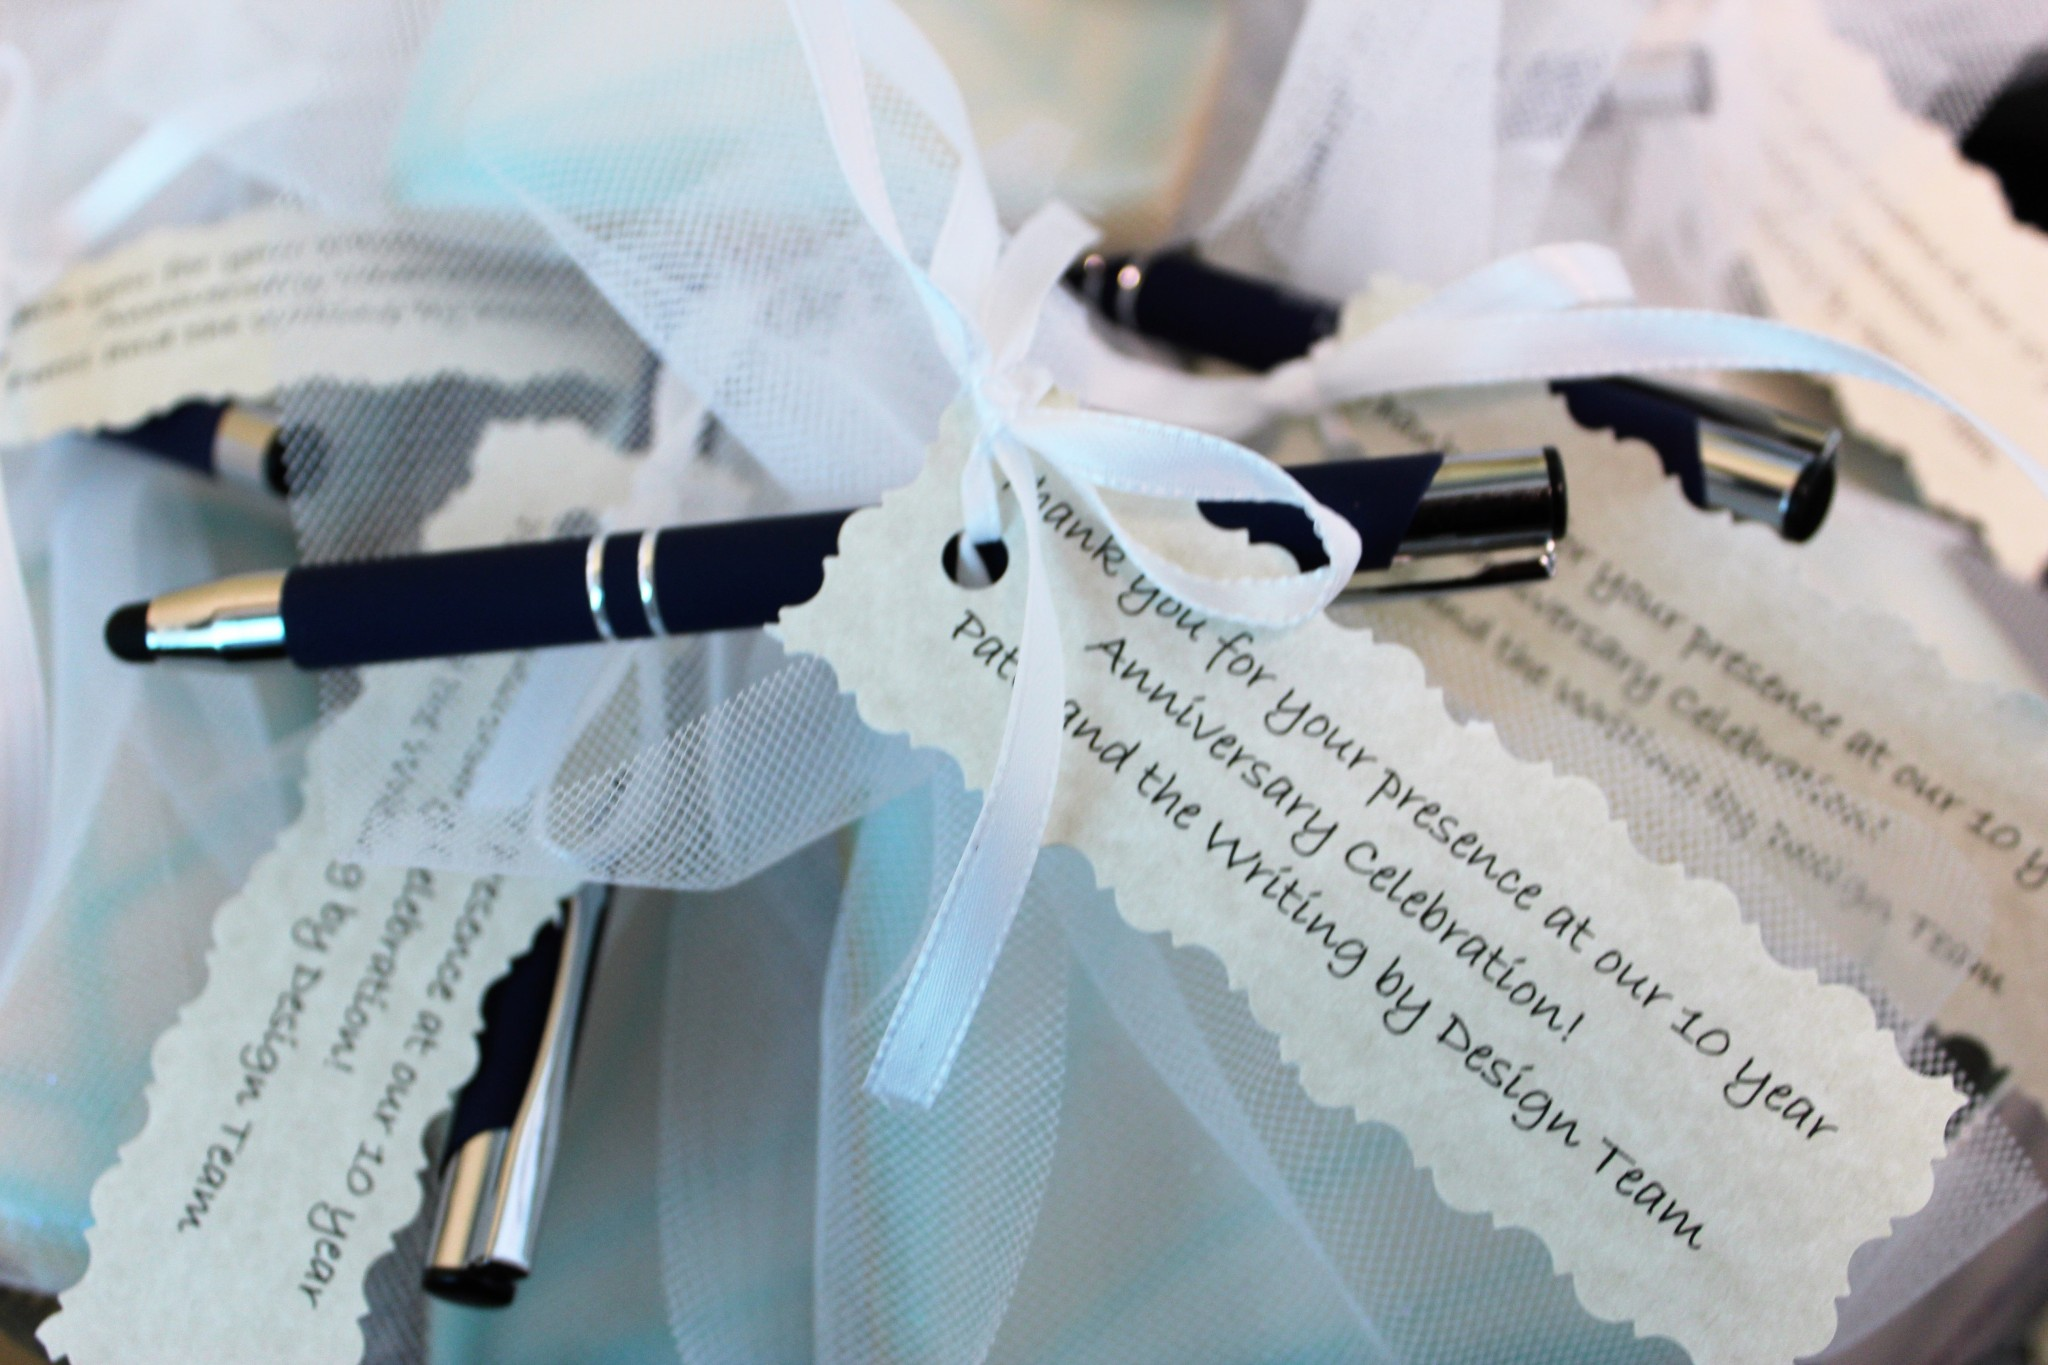 Photo of a pen with note at the Writing by Design 10-year anniversary celebration